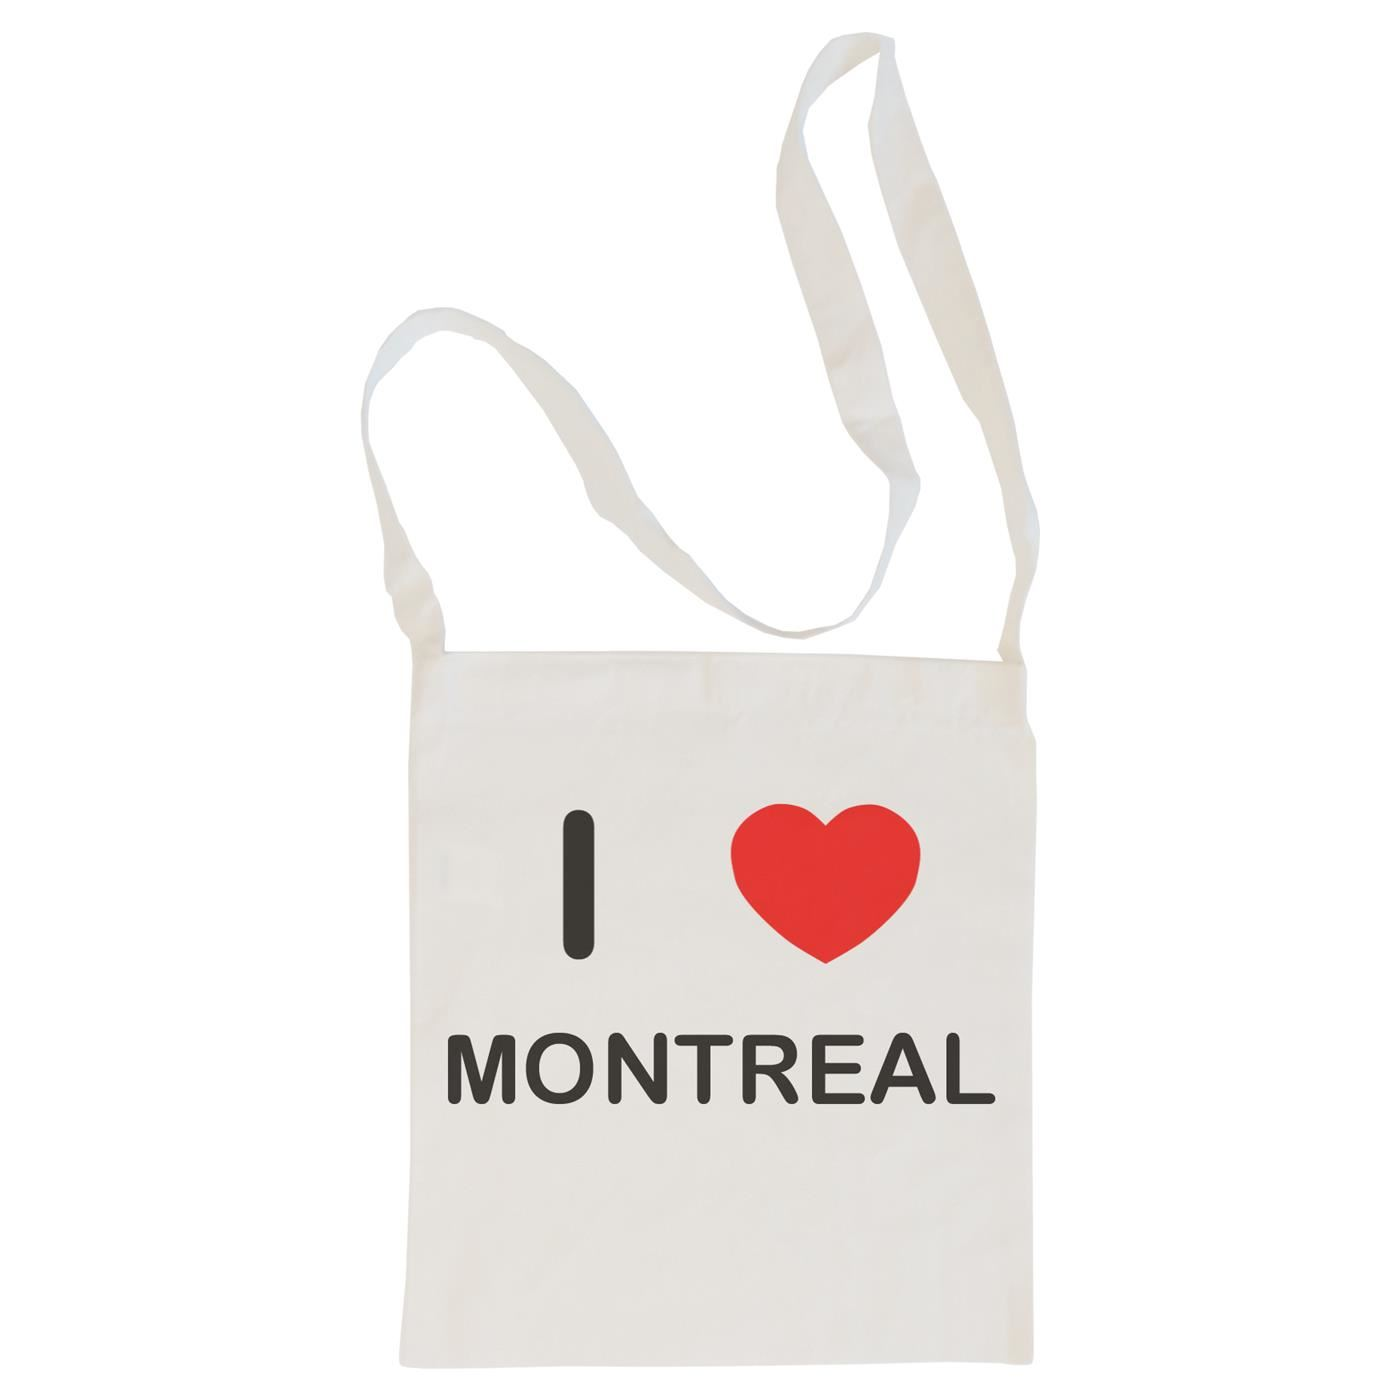 I Love Montreal - Cotton Bag | Size choice Tote, Shopper or Sling